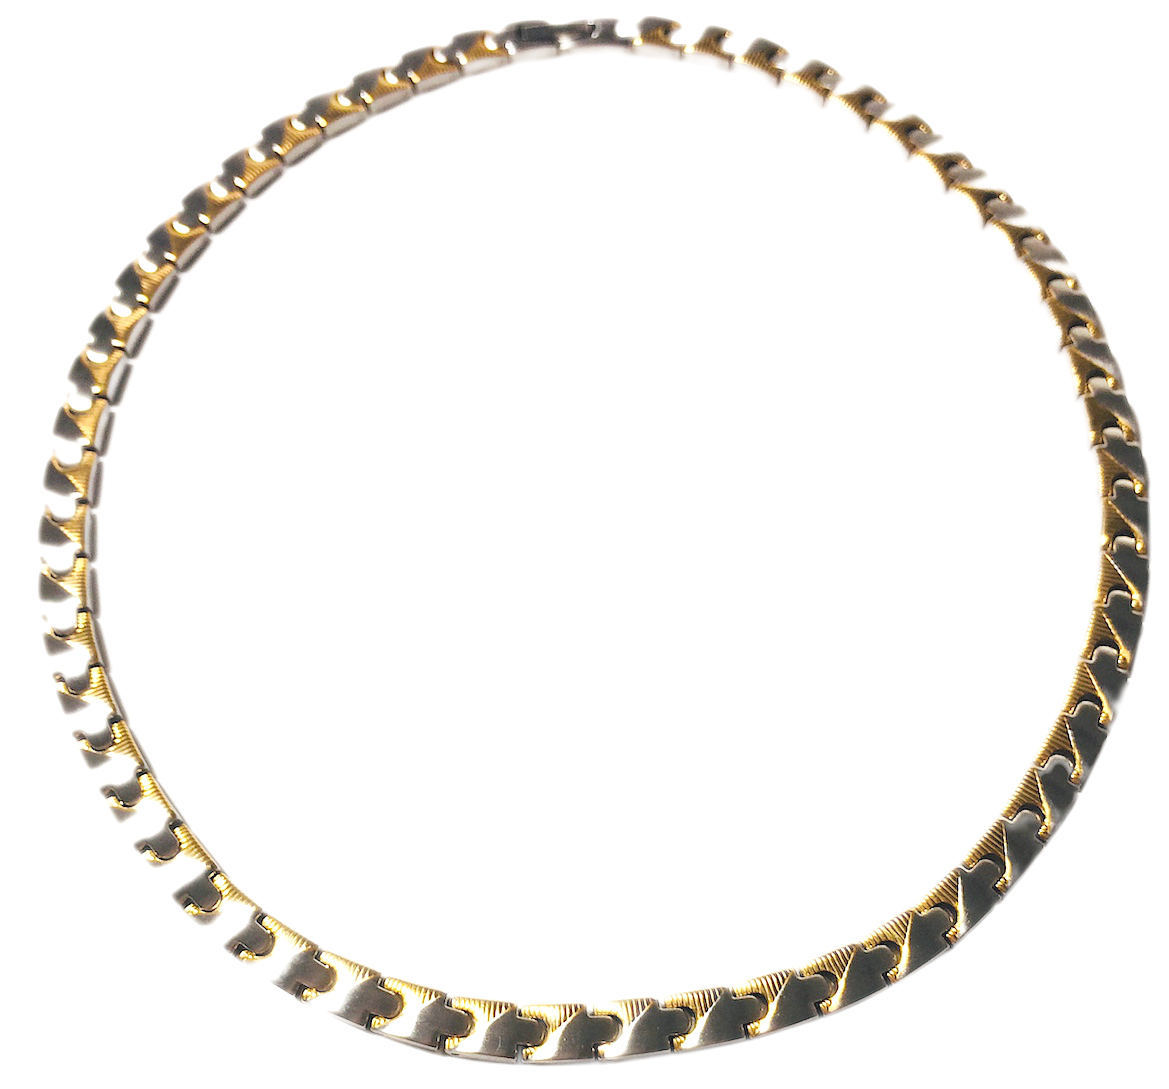 "18.5"" Gold-Tone Caps - Stainless Steel Magnetic Therapy Necklace - New!"